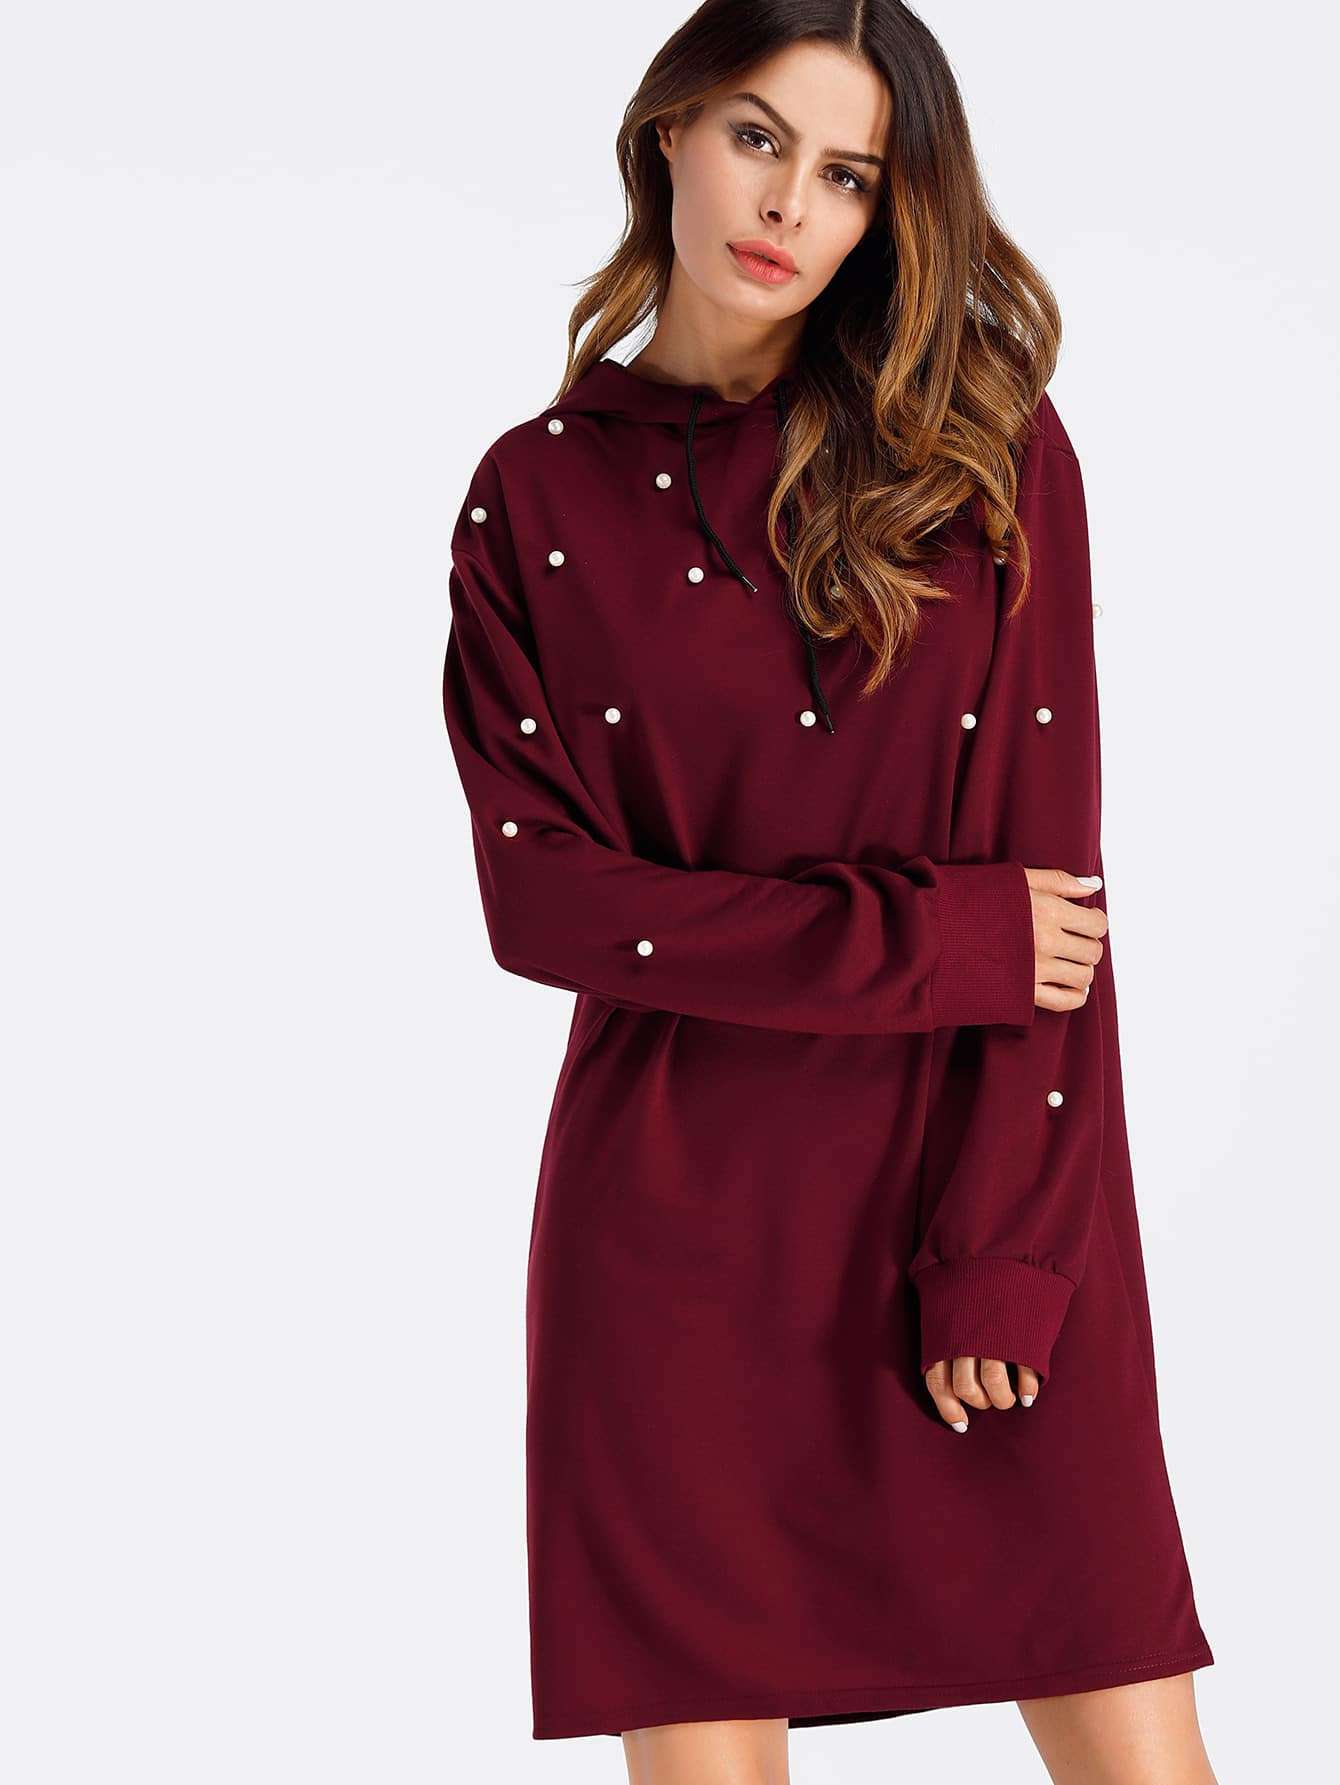 Pearl Beaded Detail Sweatshirt Dress frill layered pearl detail sweatshirt dress